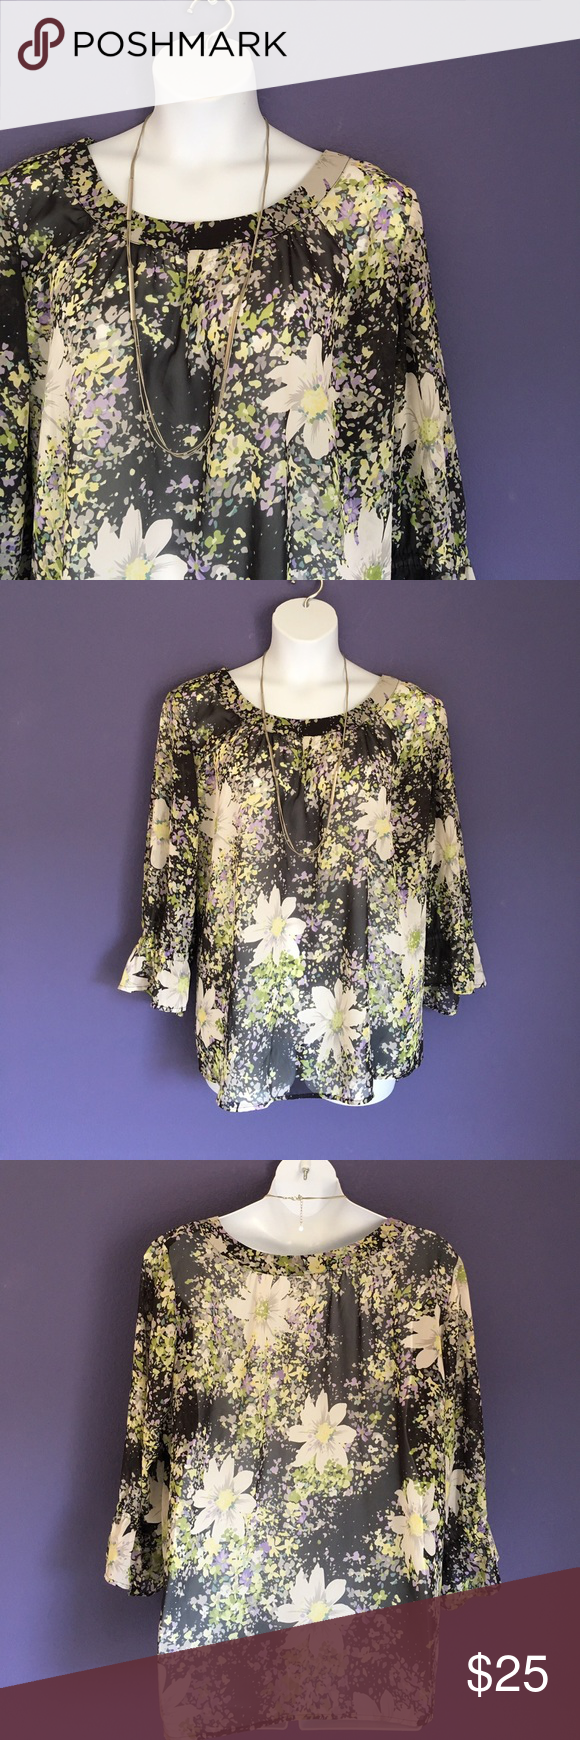 "Cato Floral Top Take time and smell the flowers!  These comfortable blouse is perfect for any occasion. Pair with capris or jeans for a great outfit.  Measurements (Flat):  Length - 29""/Bust - 31""/Waist - 29"" Cato Tops Blouses"